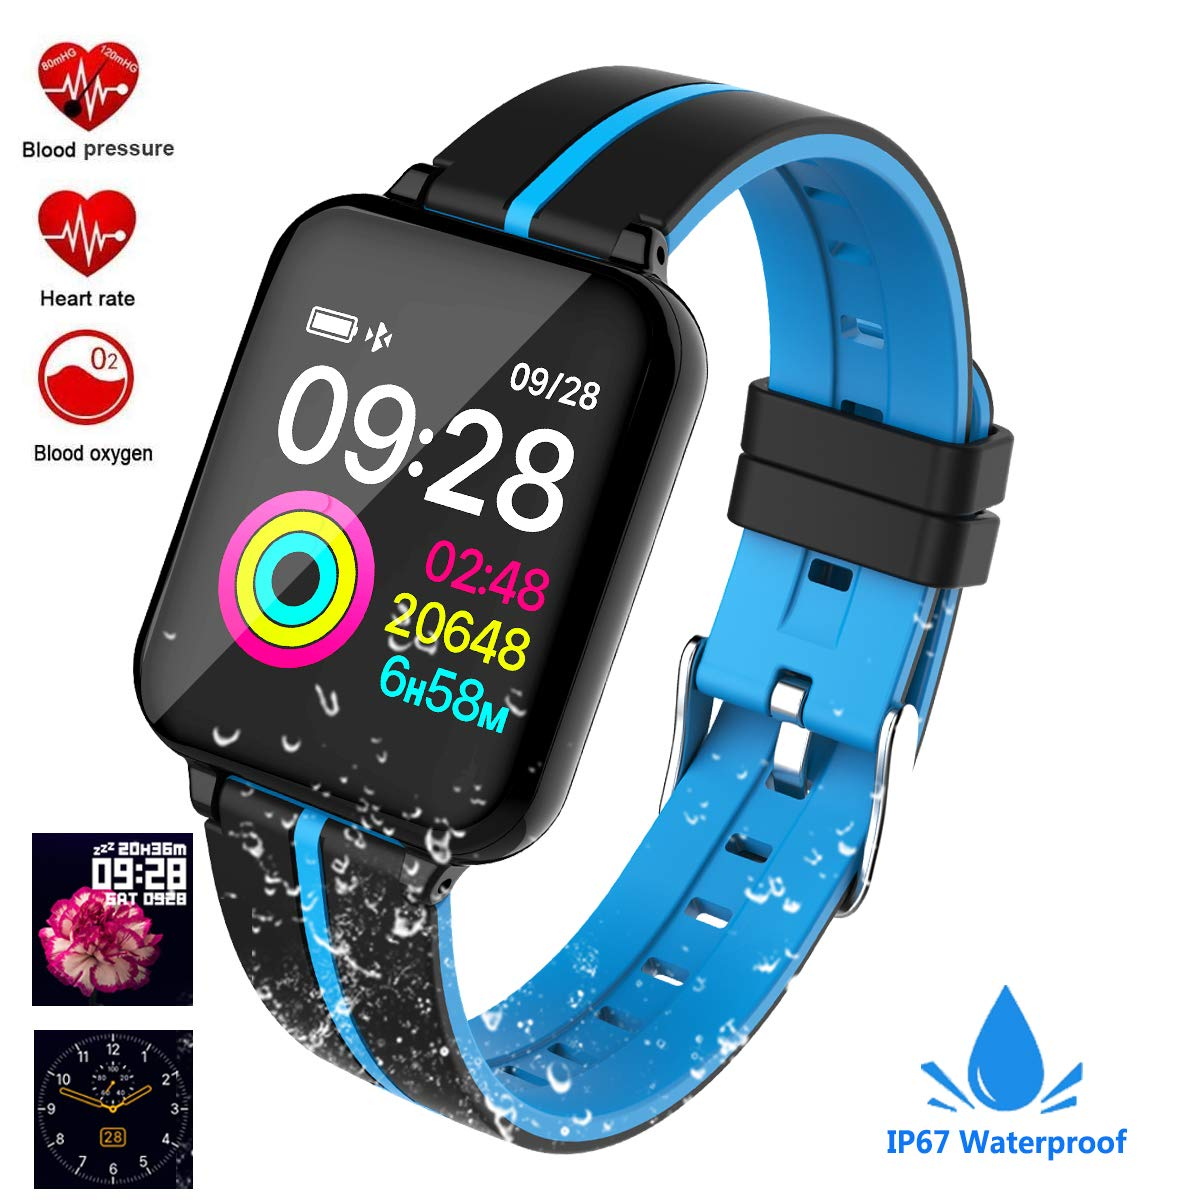 Fitness Tracker, Activity Tracker Fitness Watch with Heart Rate Monitor Color Screen,Waterproof Smart Bracelet with Step Counter,Calorie Counter,Pedometer for Kids Women Men Android iOS (Black/Blue)